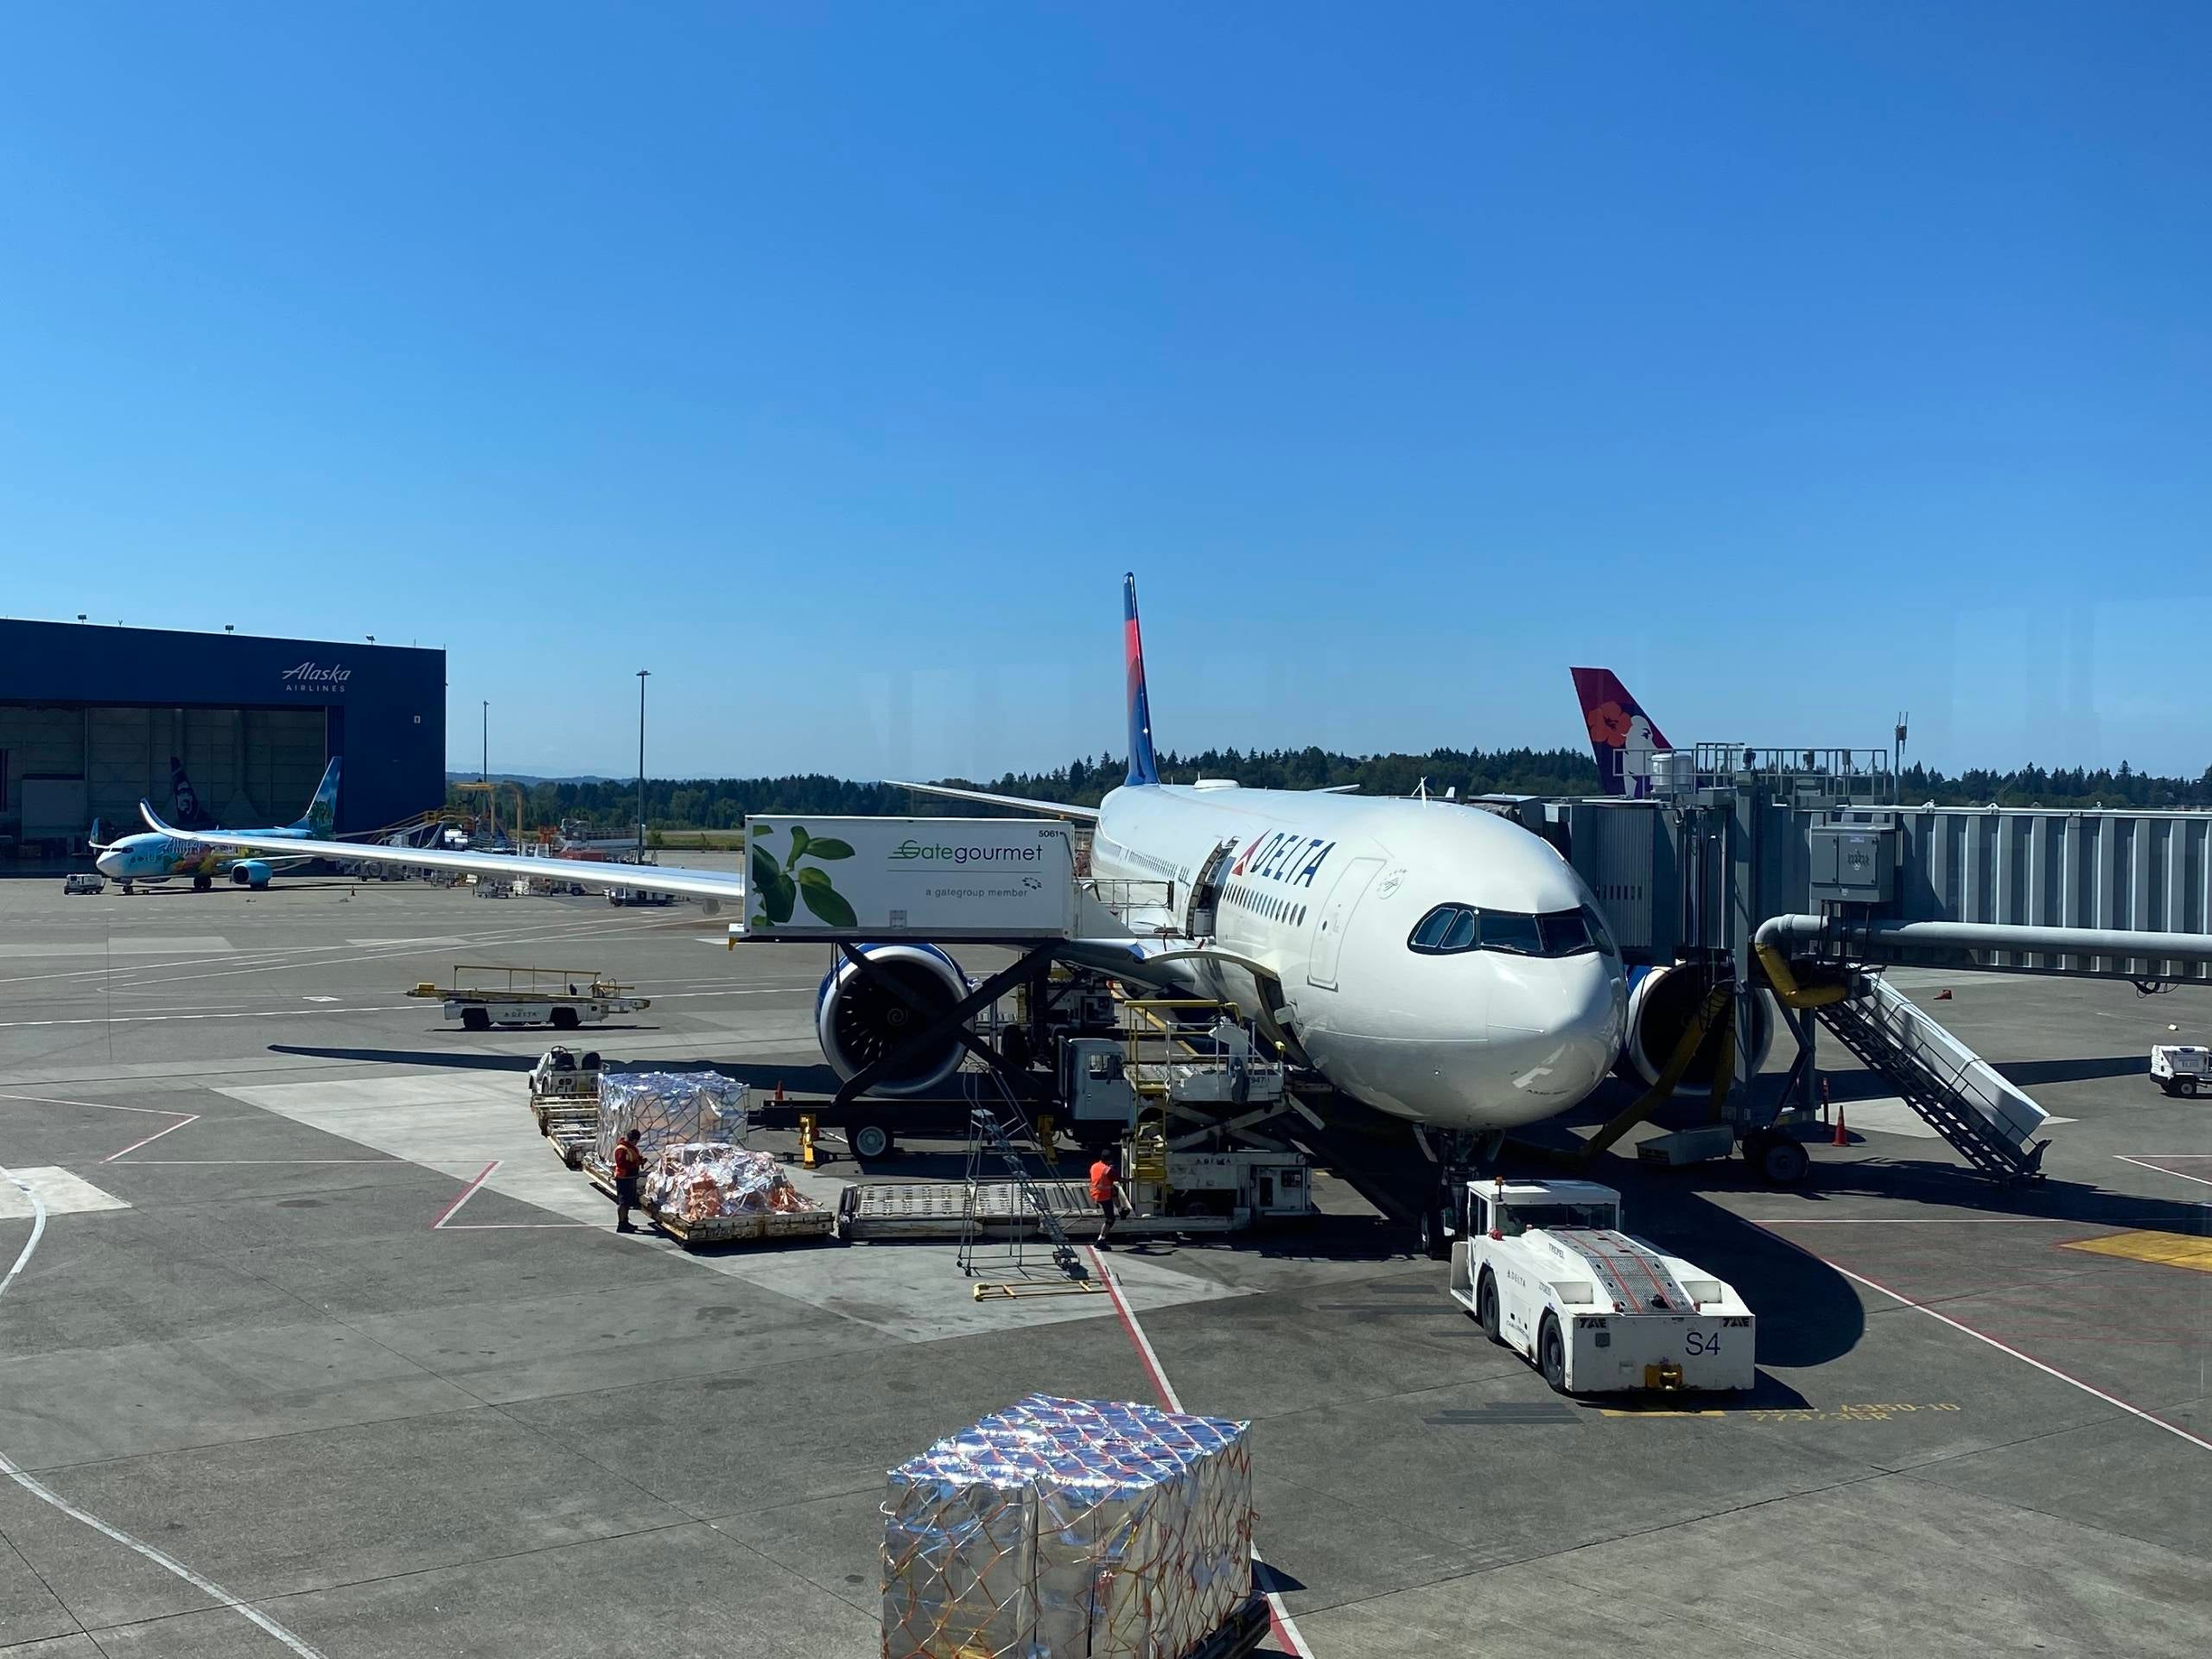 What's it like to take a transpacific flight during a pandemic